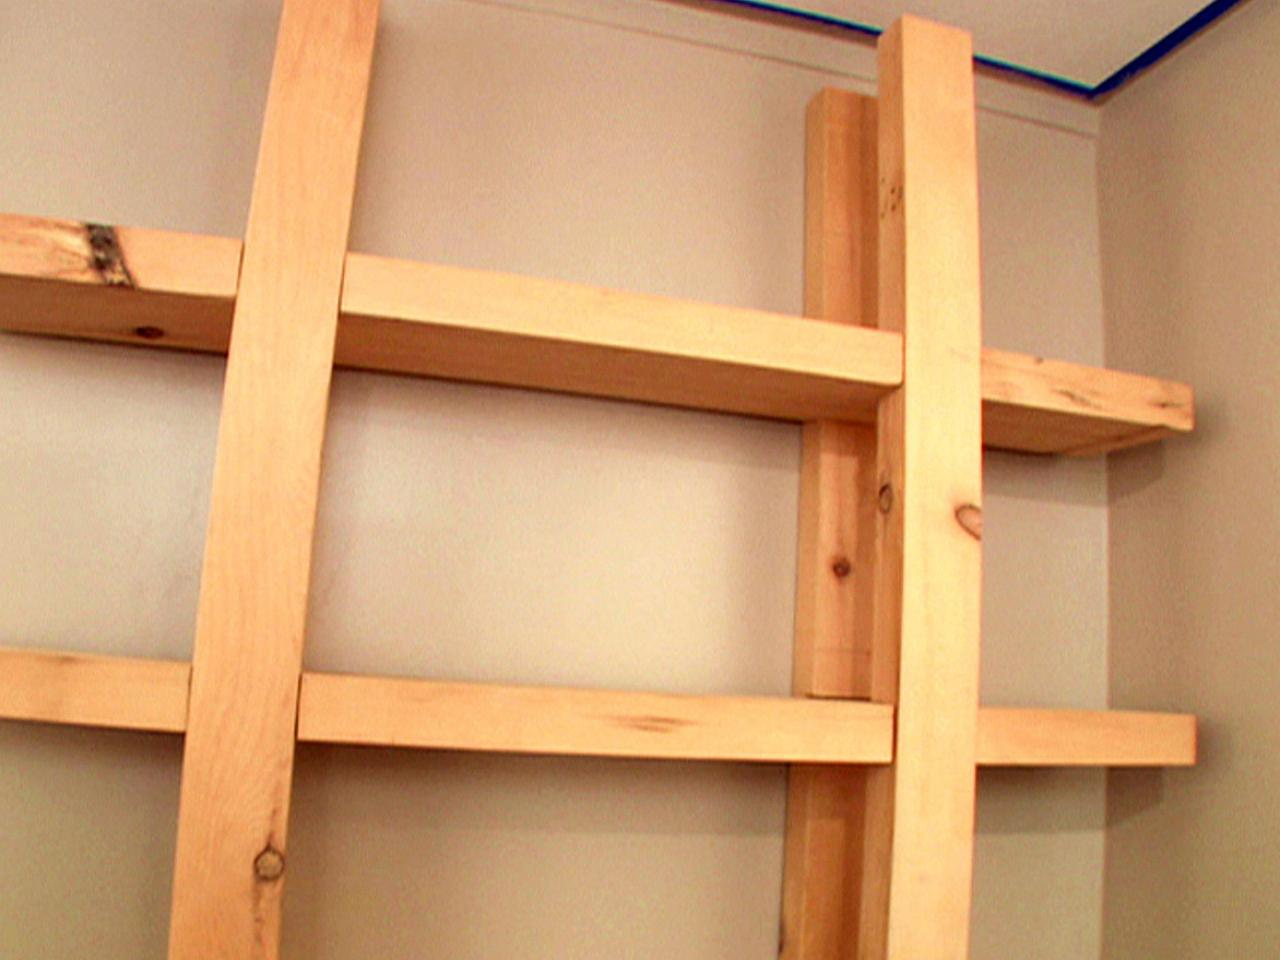 how to build reclaimed wood shelves how tos diy. Black Bedroom Furniture Sets. Home Design Ideas